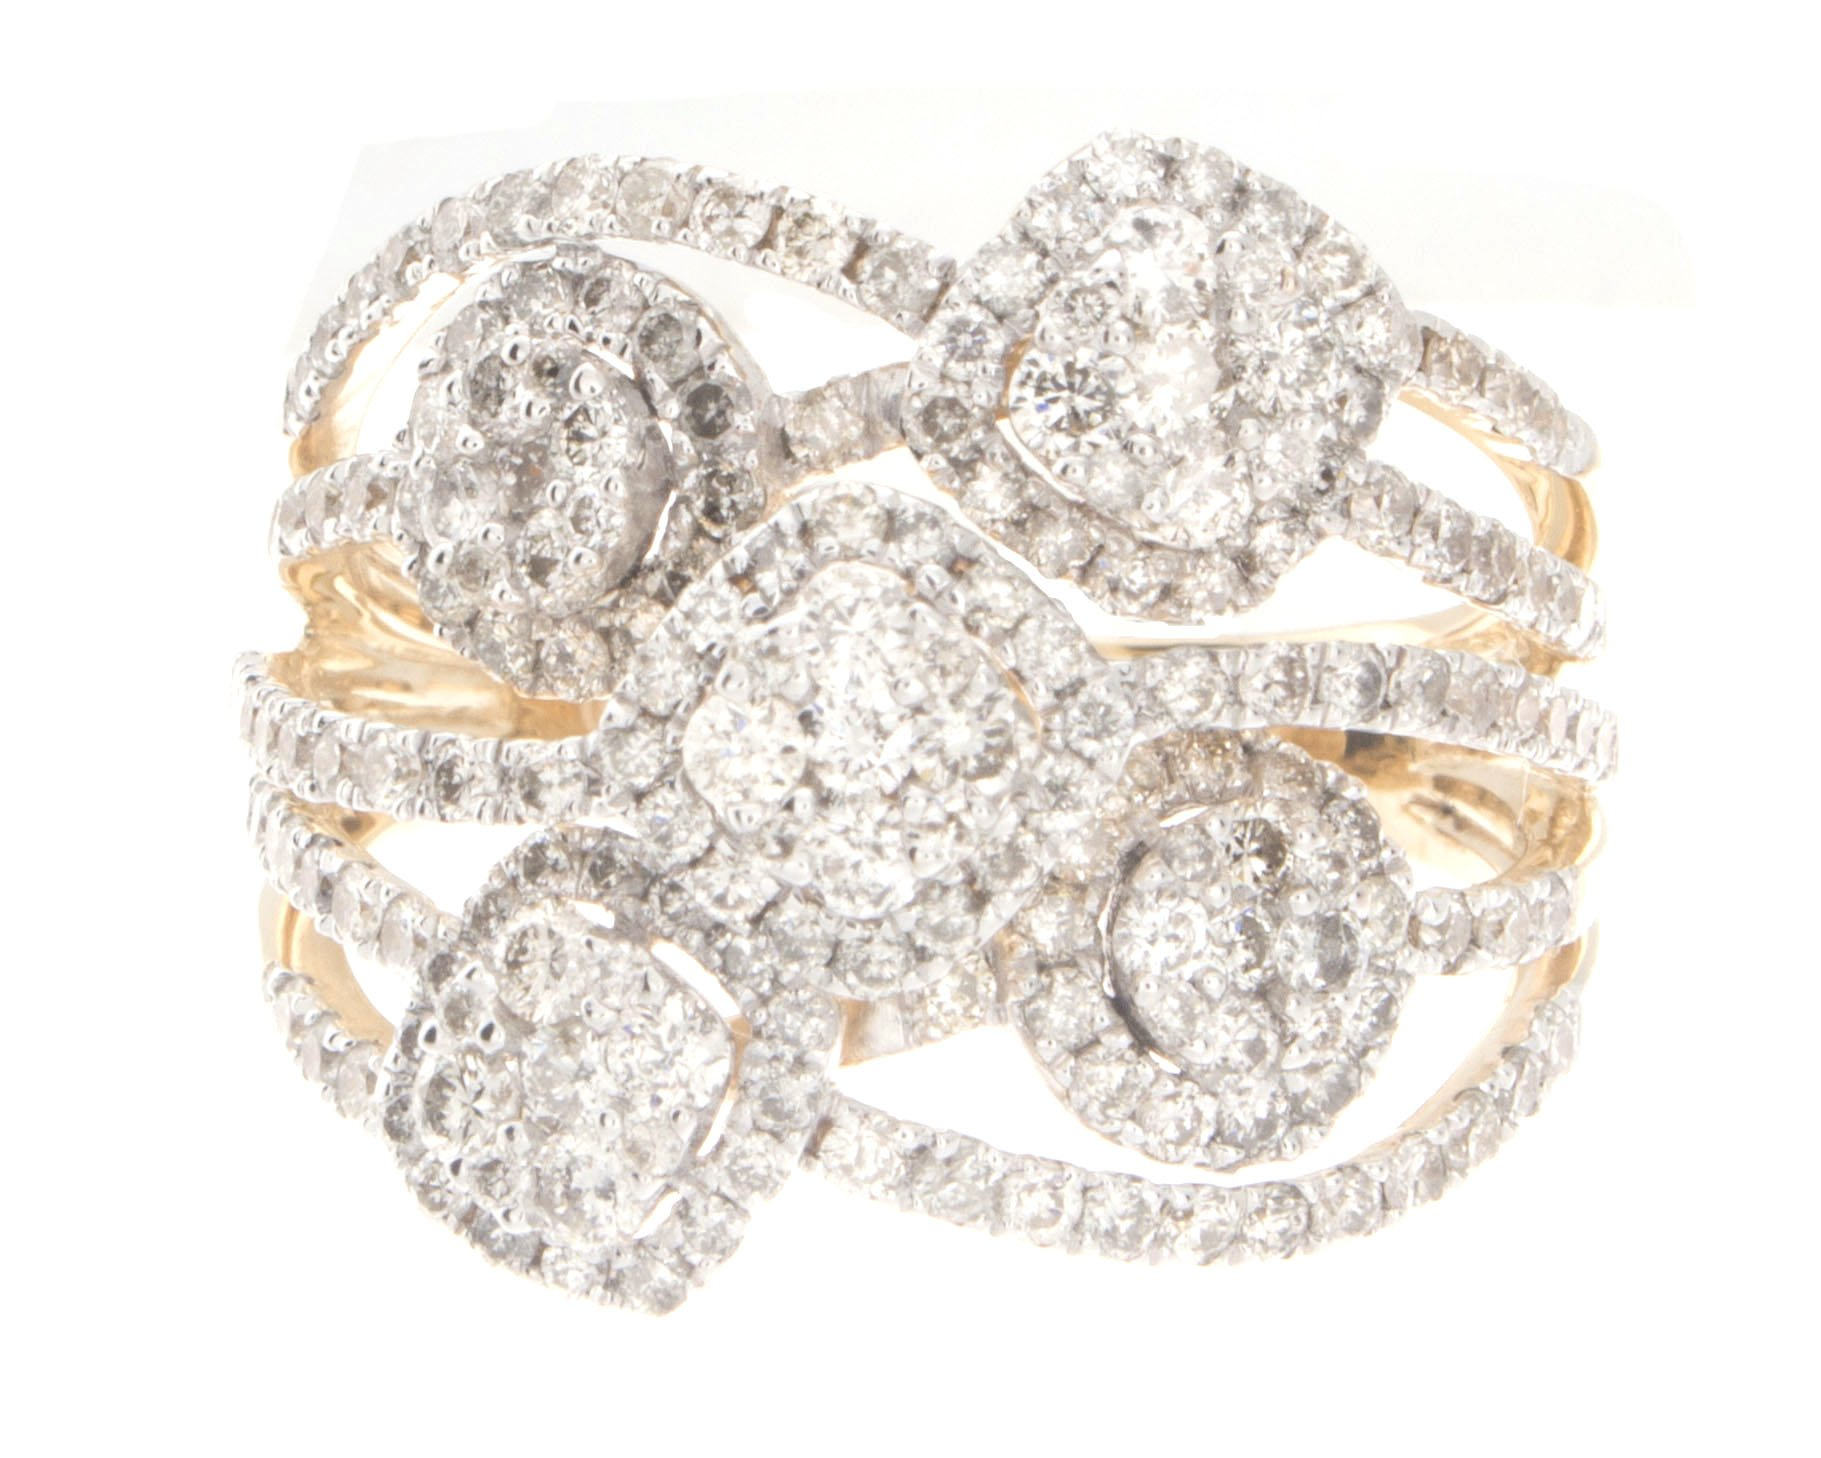 1.67ctw Excellent Cut Round Diamond (H-1 color, i1 - i2 clarity) in 14k Gold Fashion Ring